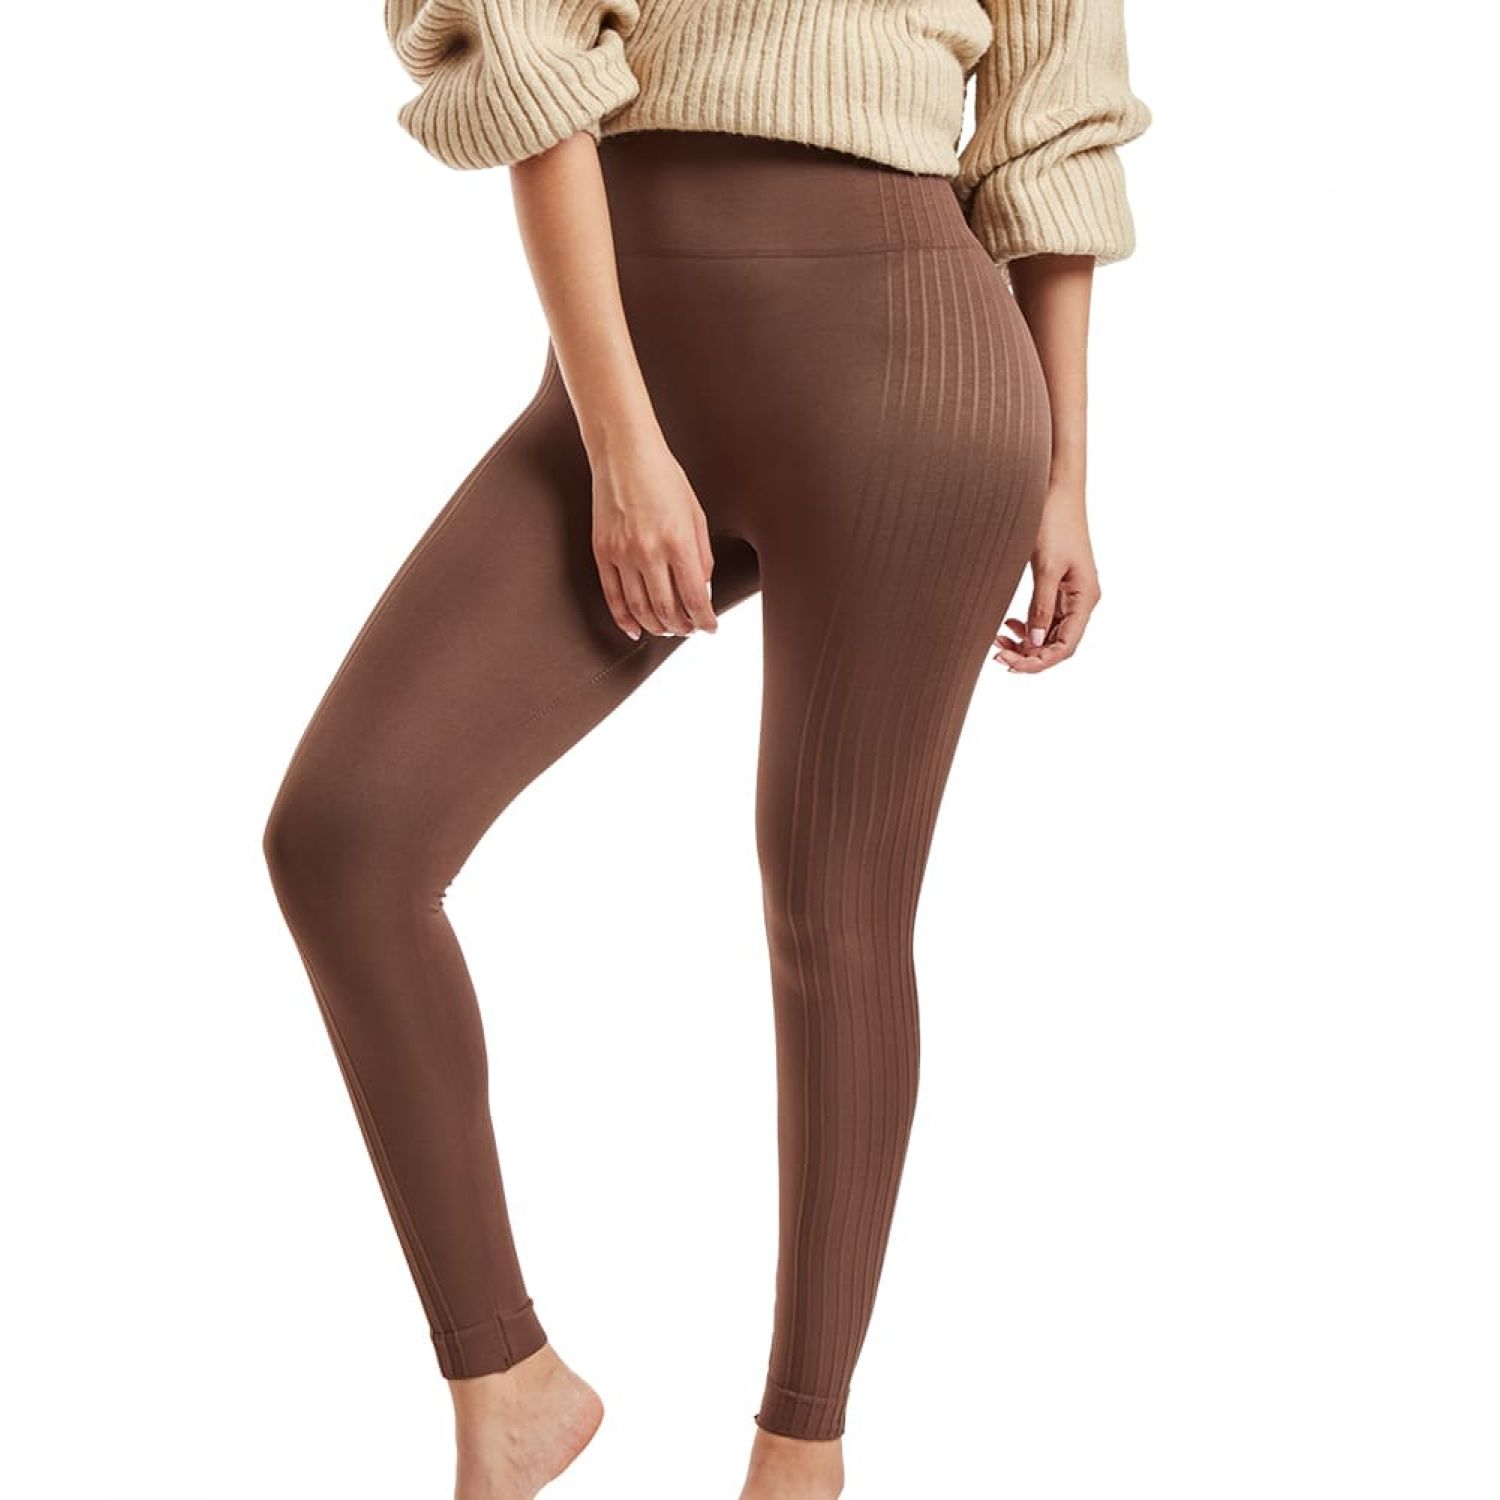 KOKETA SEAMLESS LEGGING CATALINA OI20 MARRON BAG Leggings